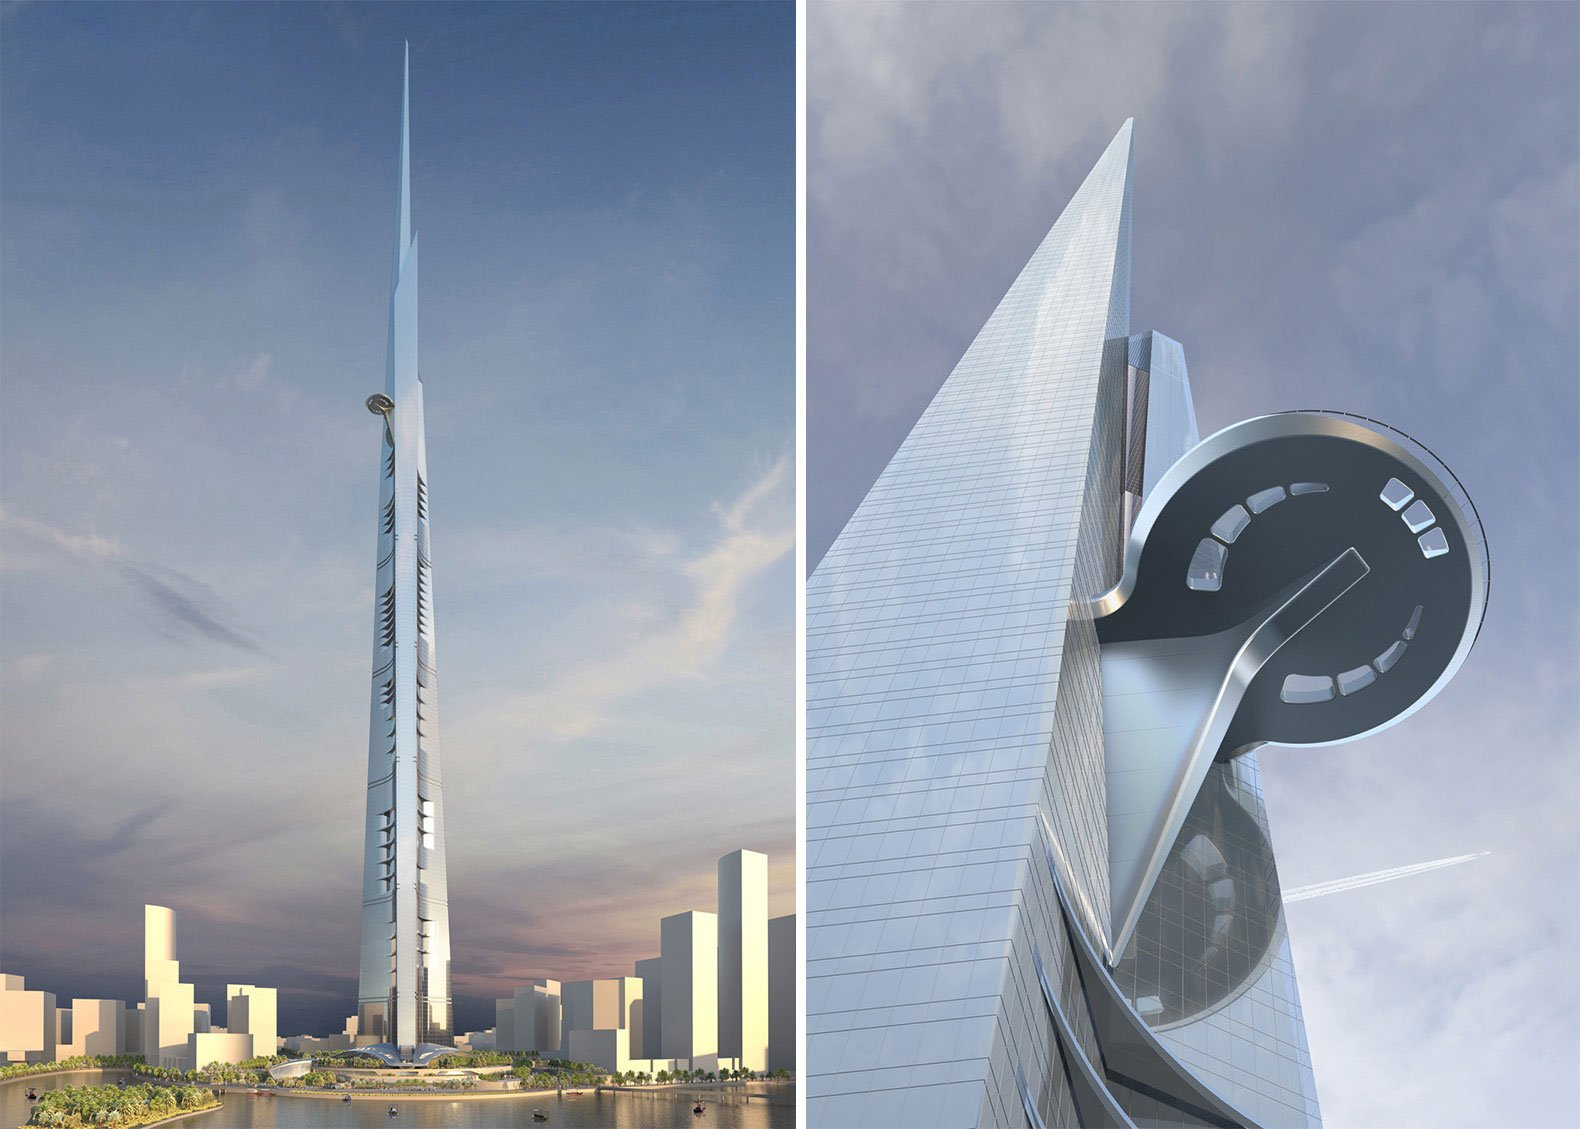 Jeddah Tower designed by Adrian Smith & Gordon Gill